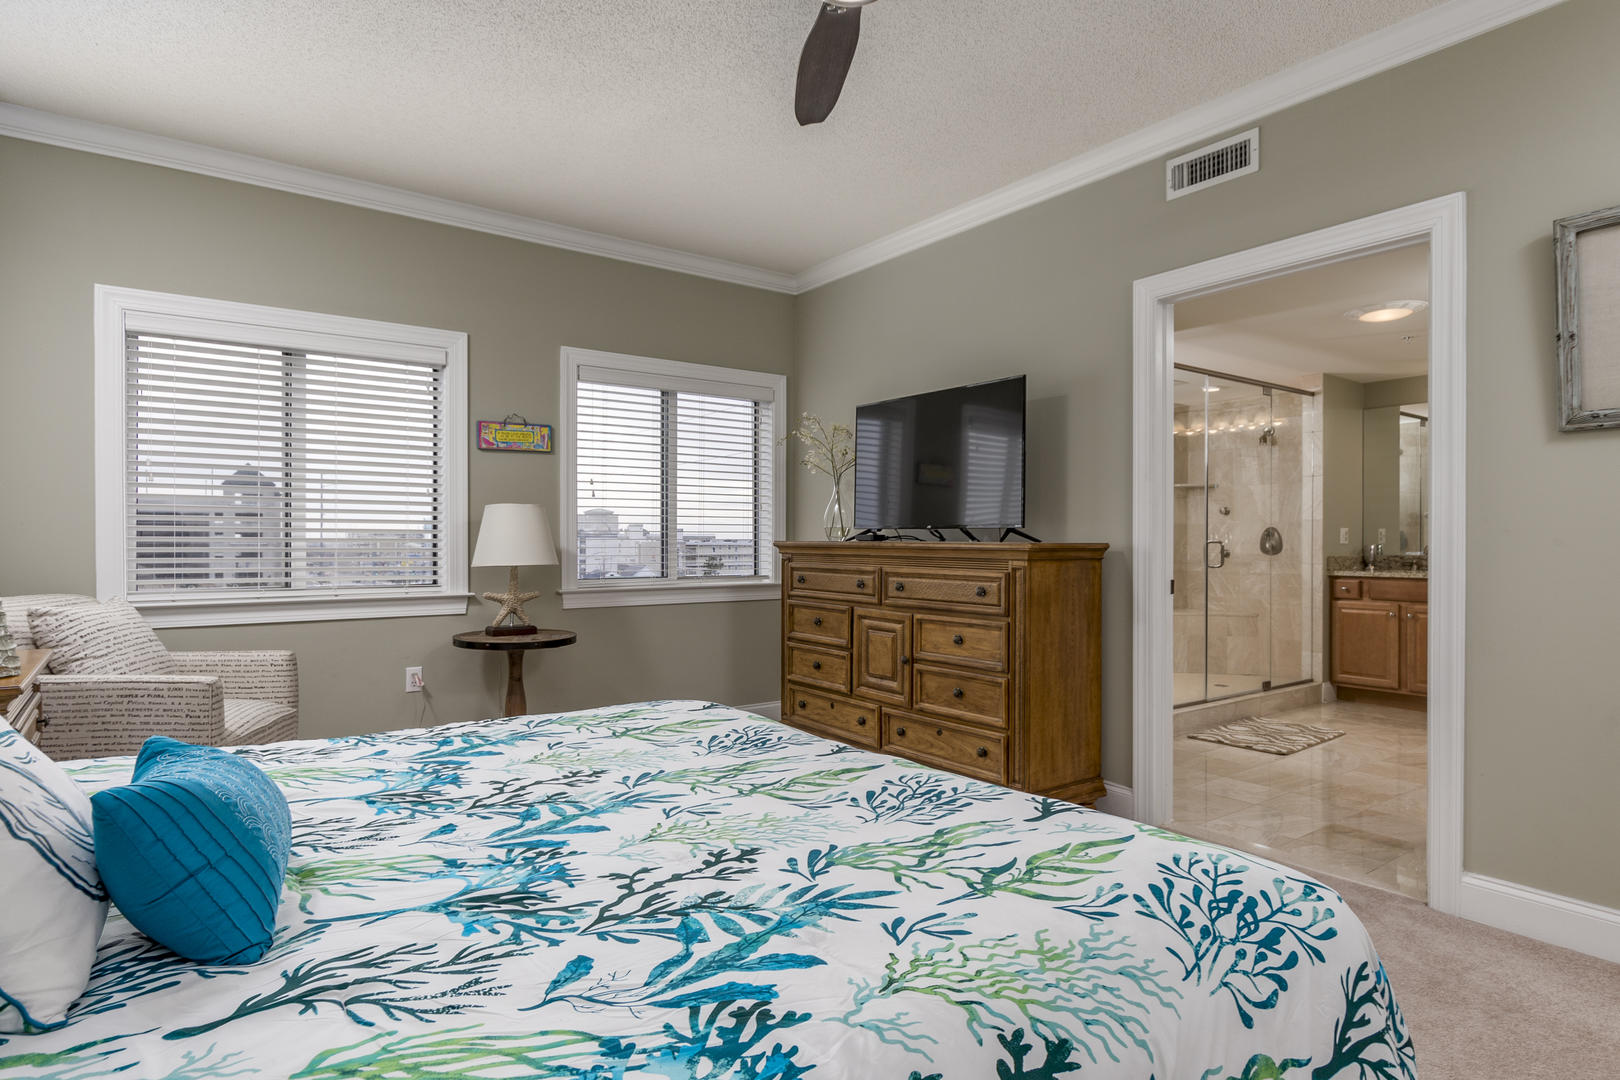 Ocean Bliss, 404 - Master Bedroom